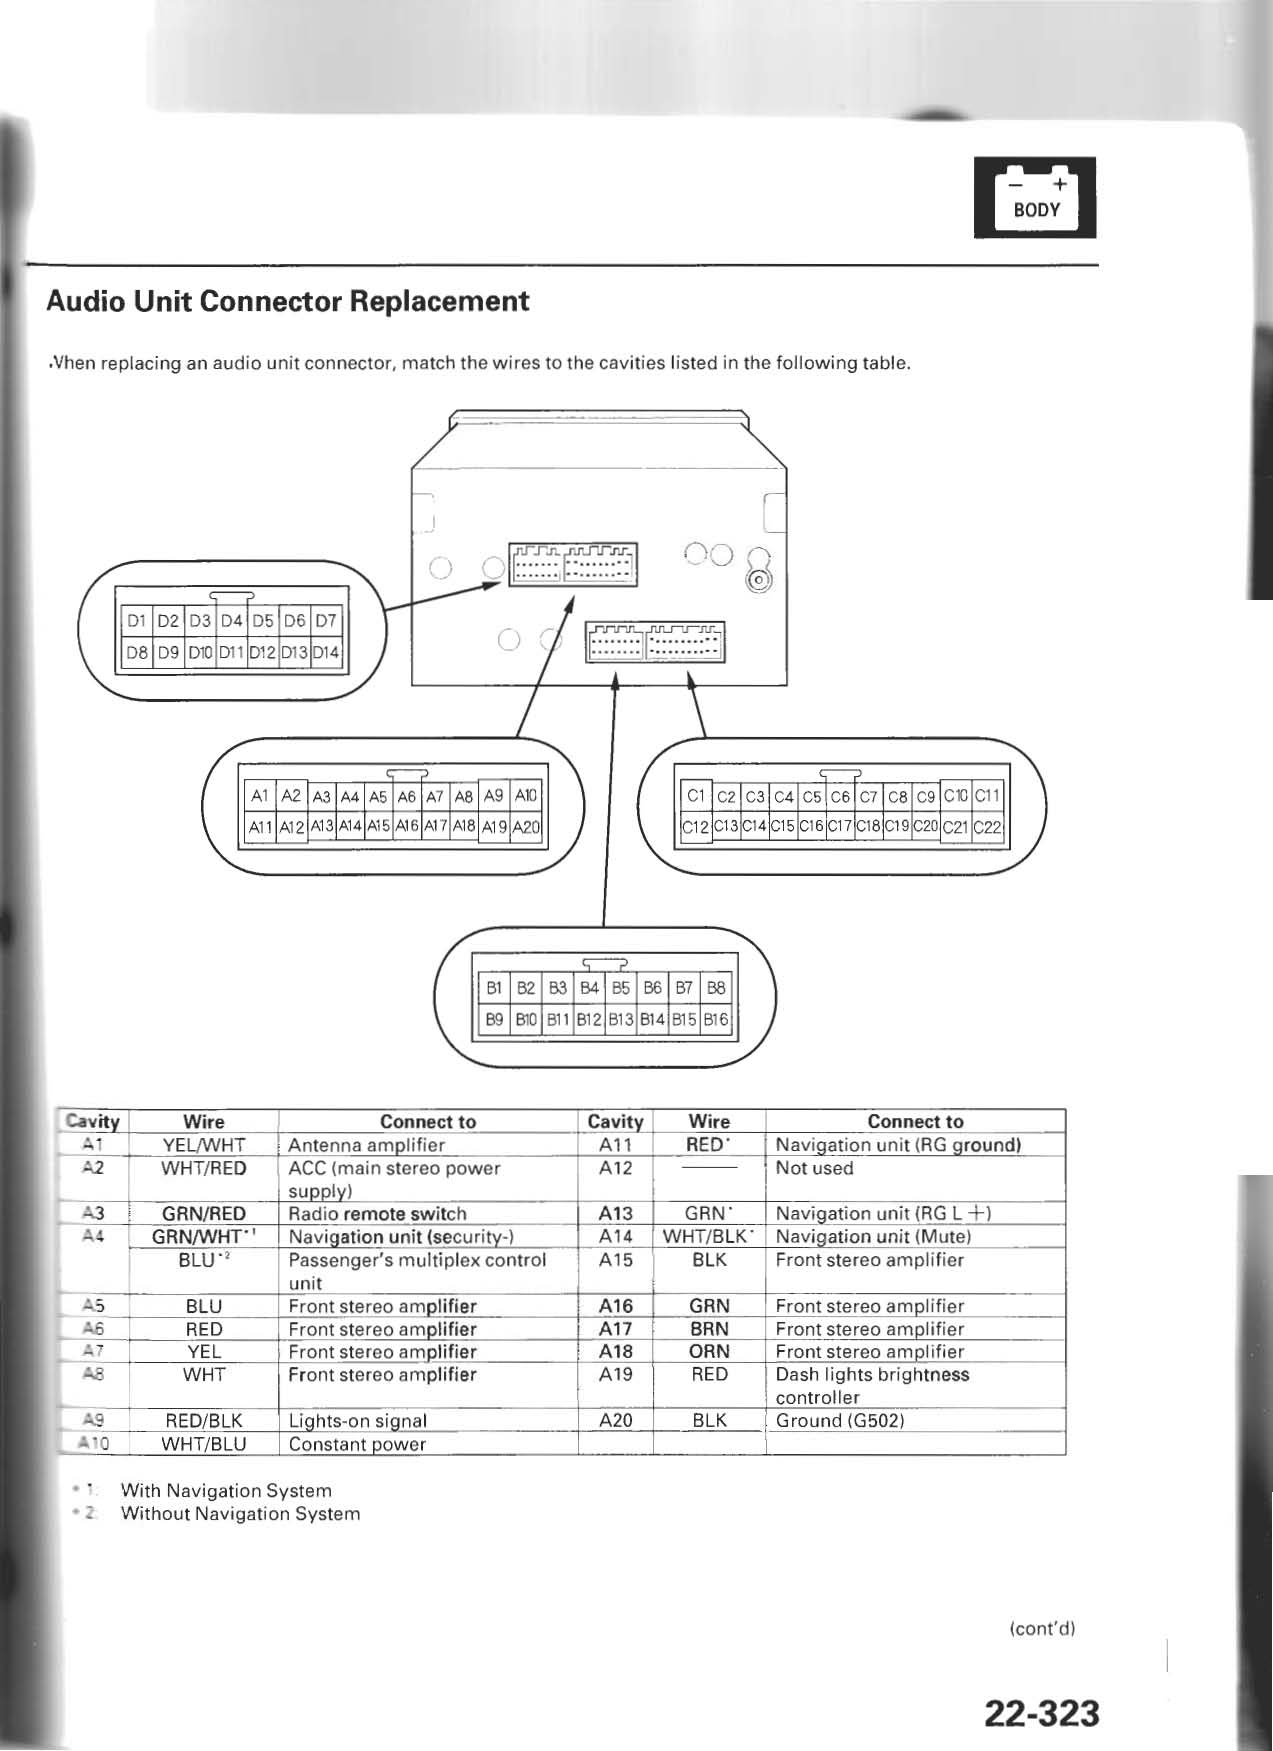 30384d1111169775 retrofit 01 04 mdx w bluetooth outs 2003 mdx radio retrofit 01 04 mdx w bluetooth page 2 acura mdx forum acura 2005 acura tl amp wiring diagram at webbmarketing.co